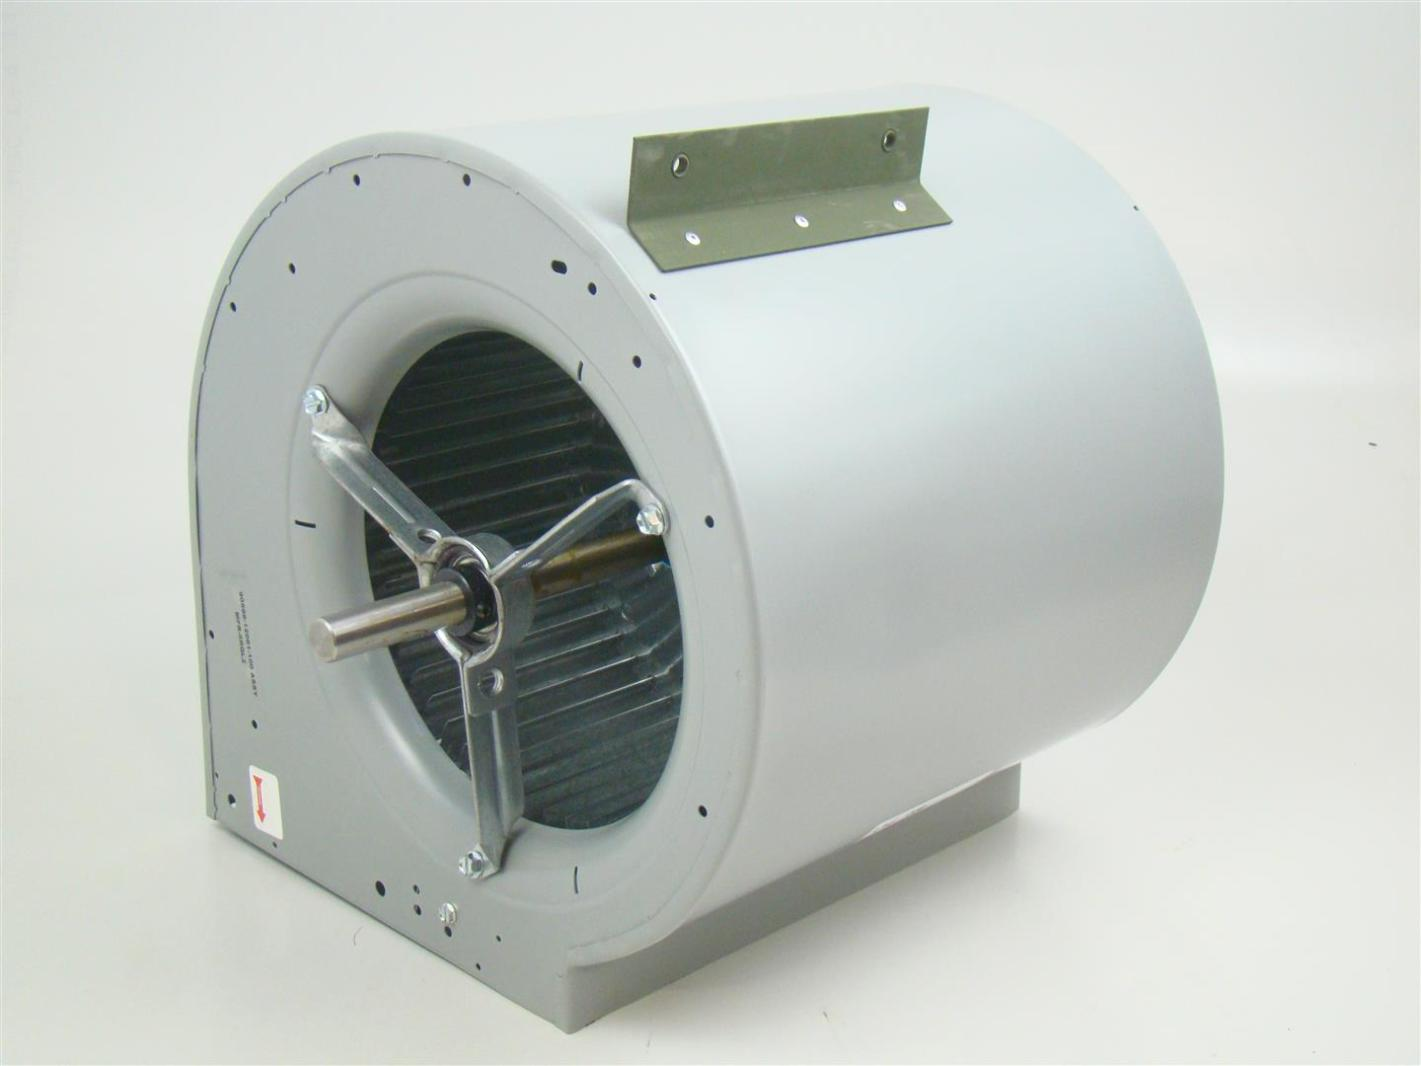 Lau 3 4 Shaft 10 Centrifugal Squirrel Cage Blower Fan